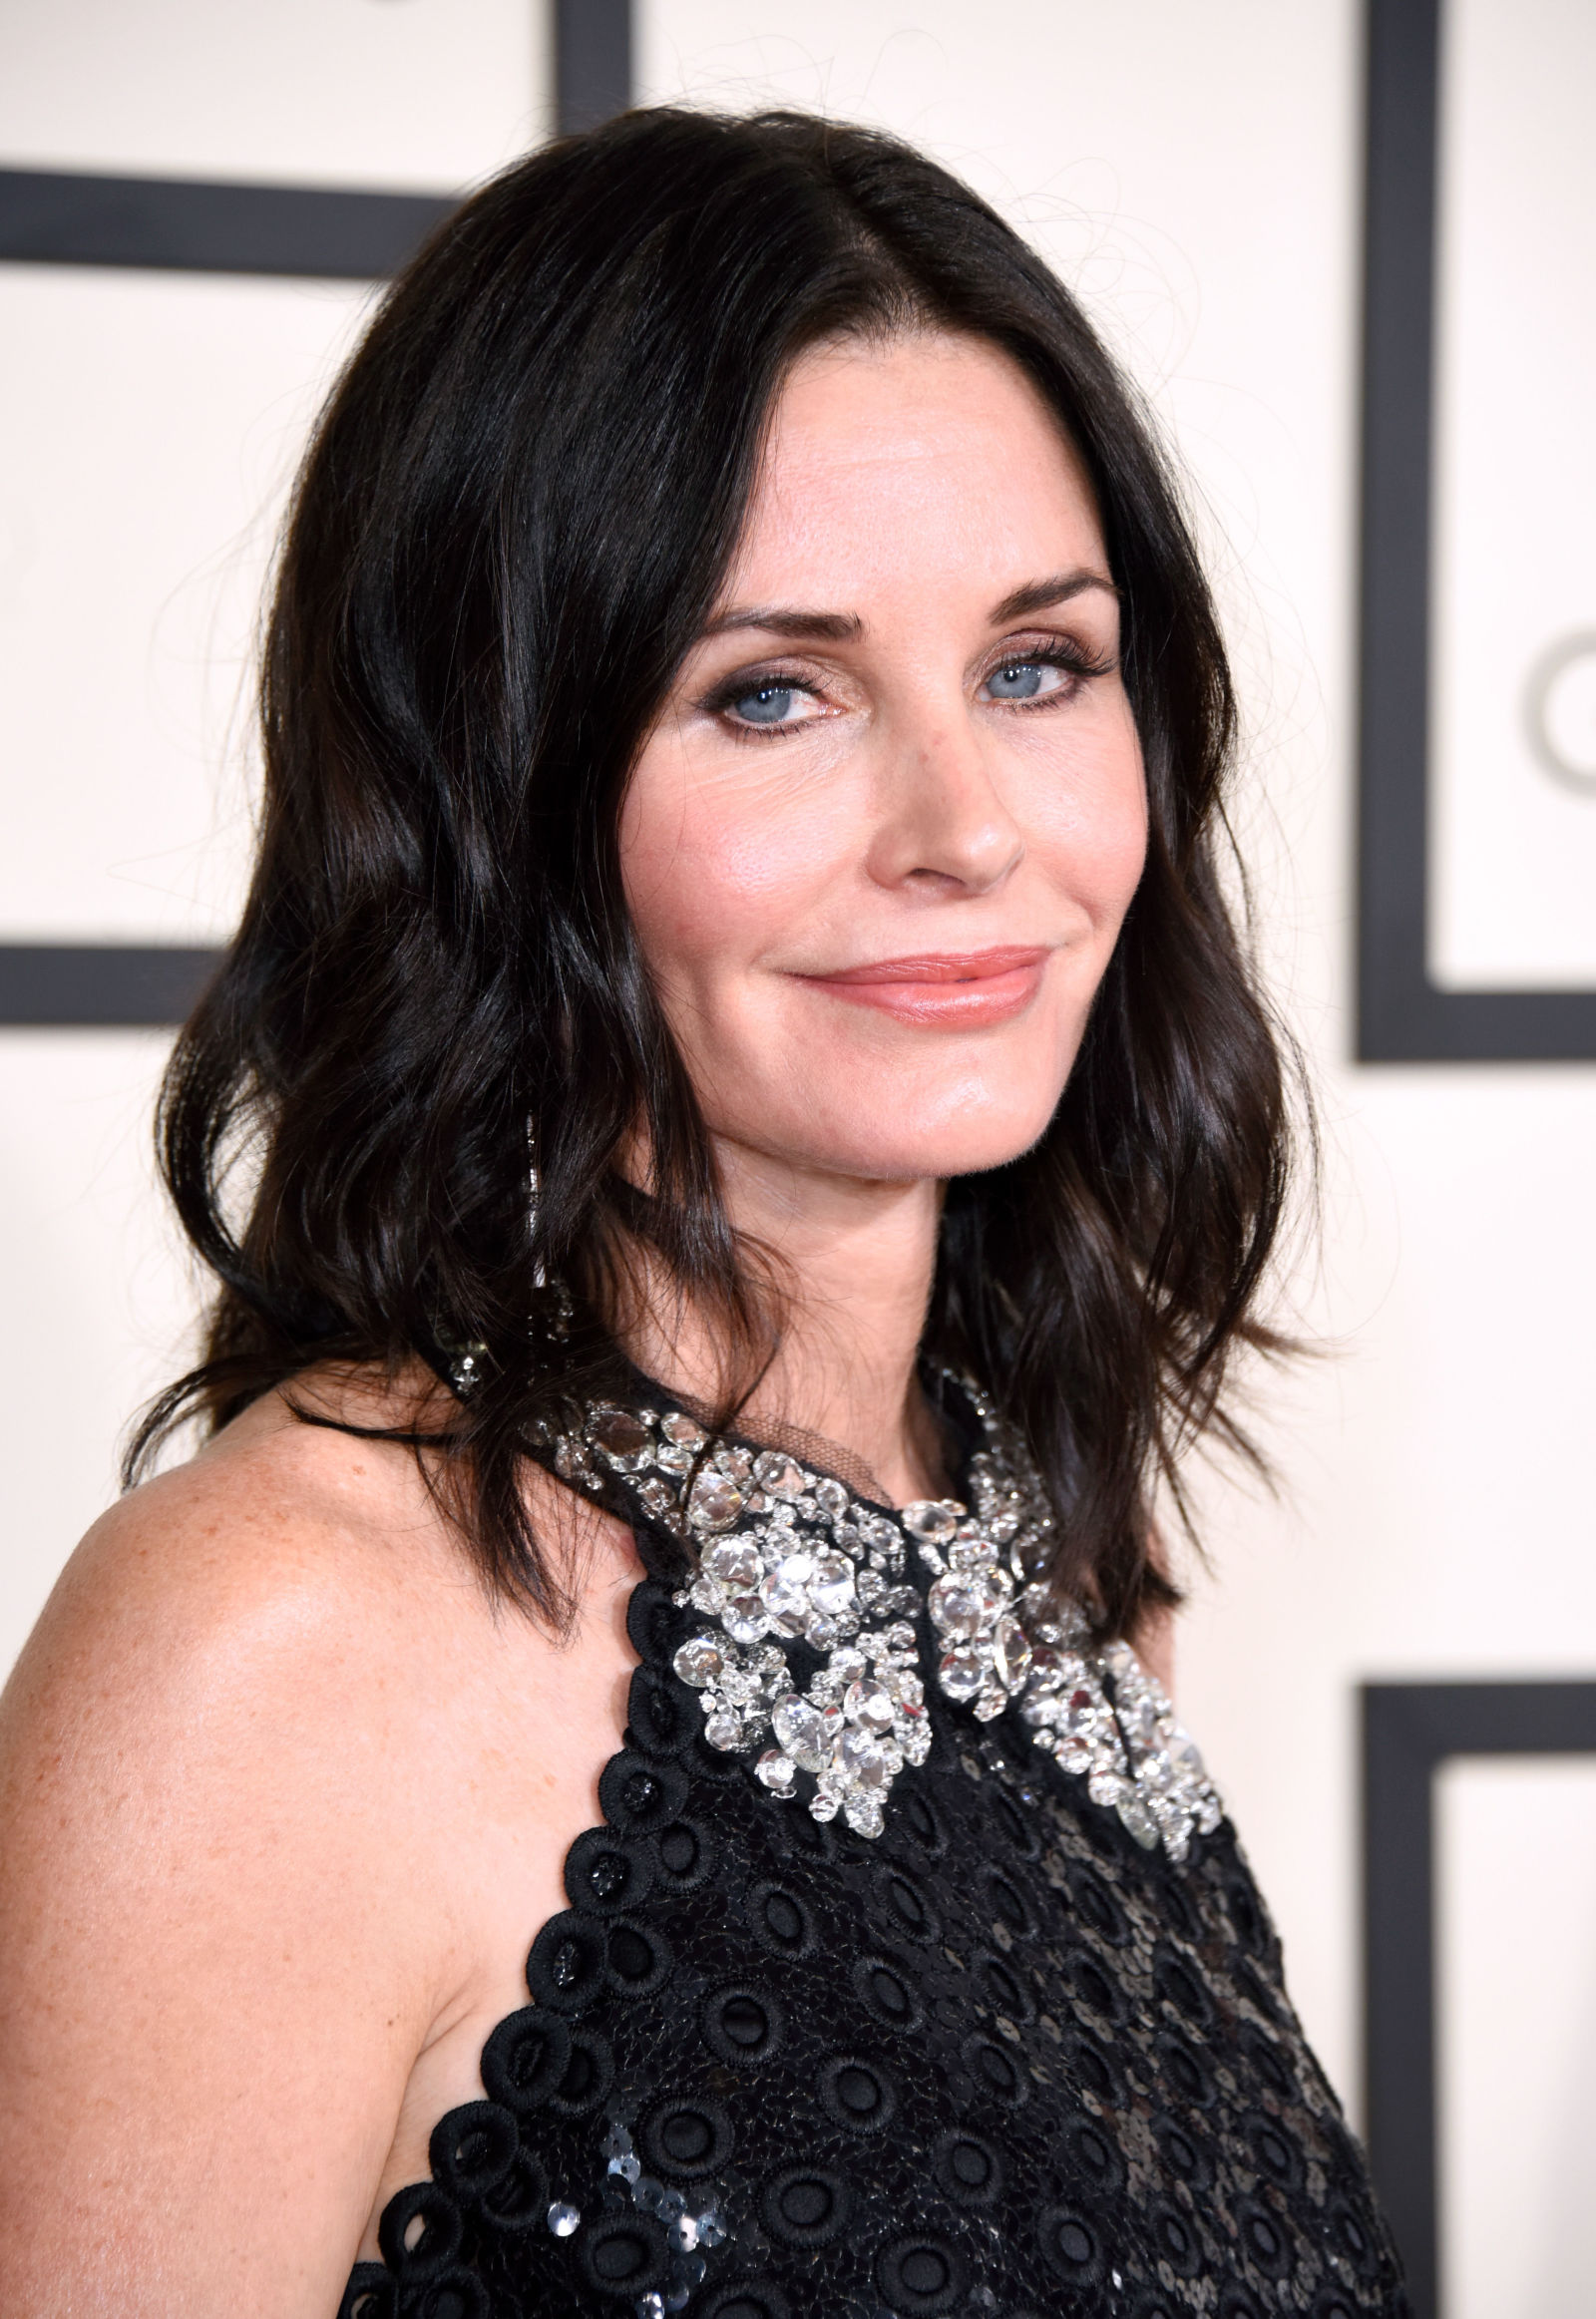 gallery-1430516816-courteney-cox